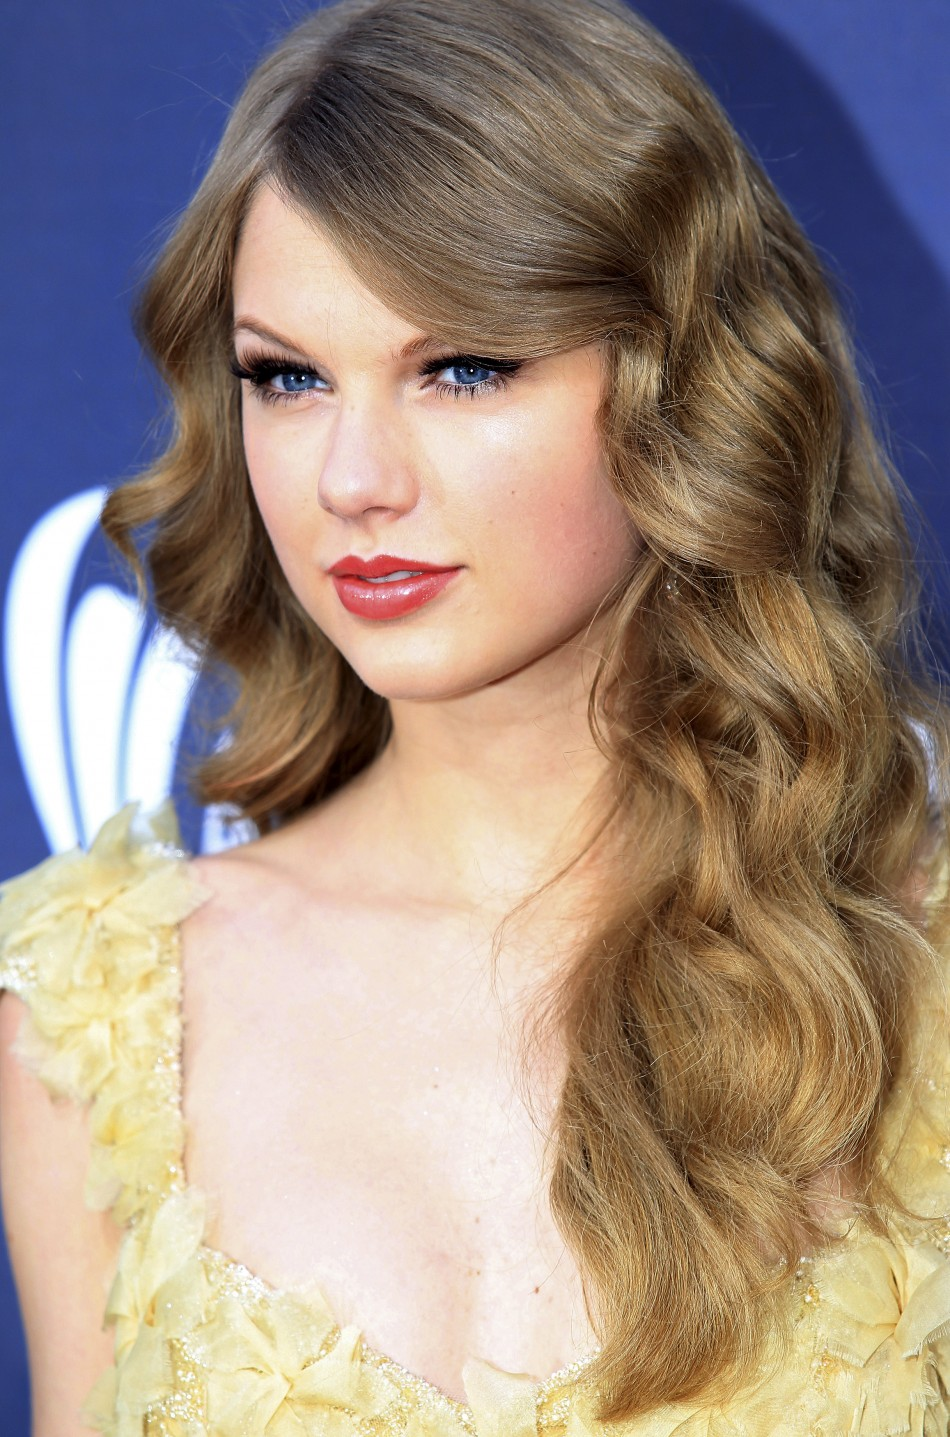 Celeb Jihad: The Smut Site with Topless Photo of Taylor